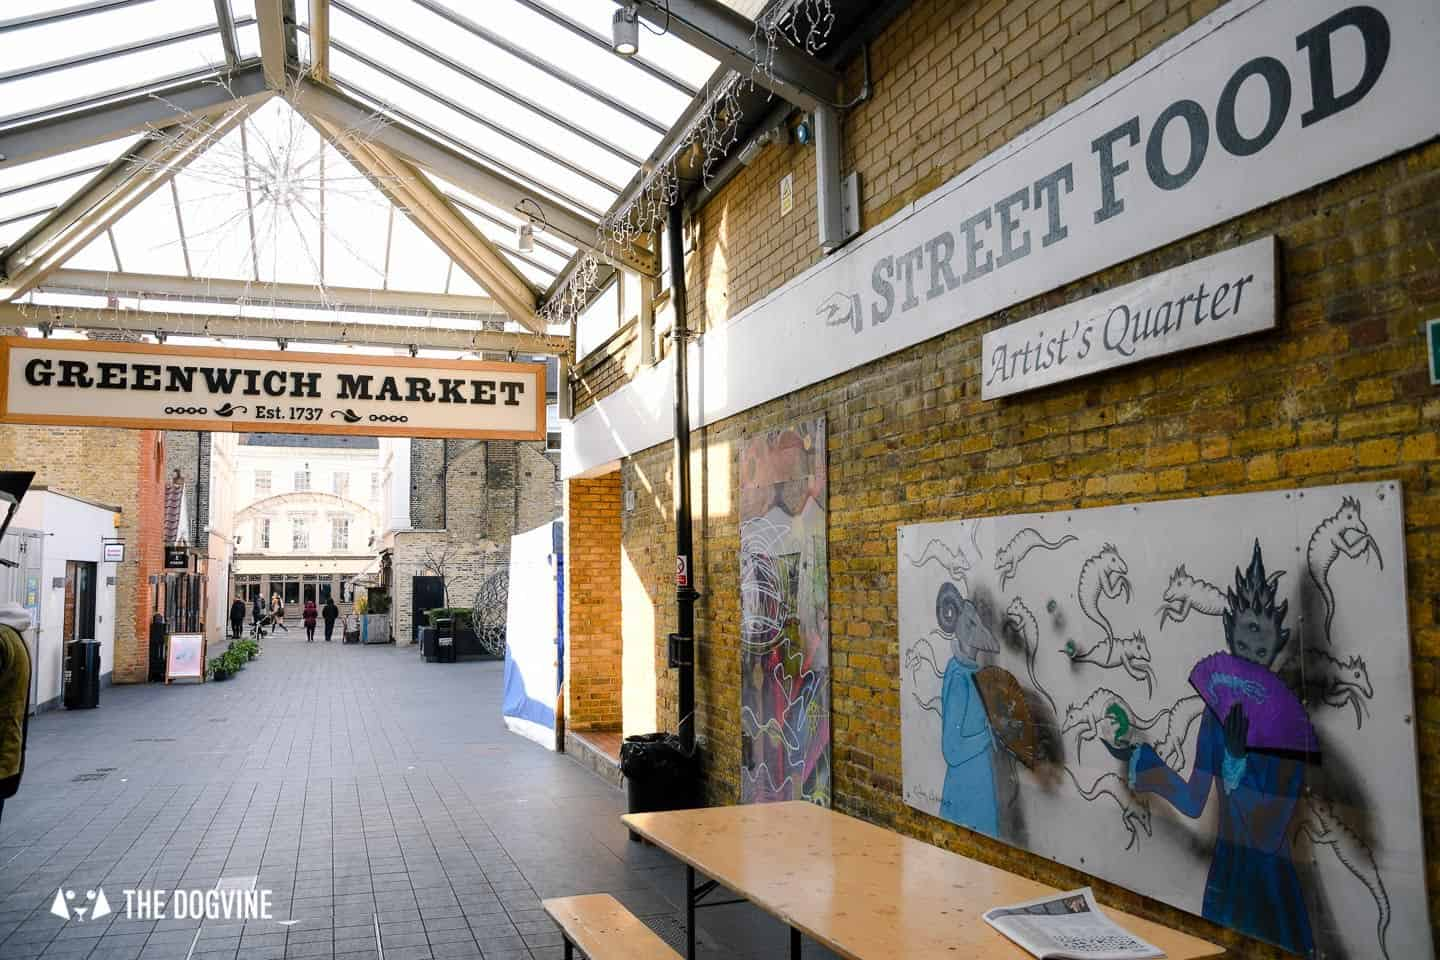 Best Dog-friendly Street Food Markets and Halls in London - Greenwich Market Entrance